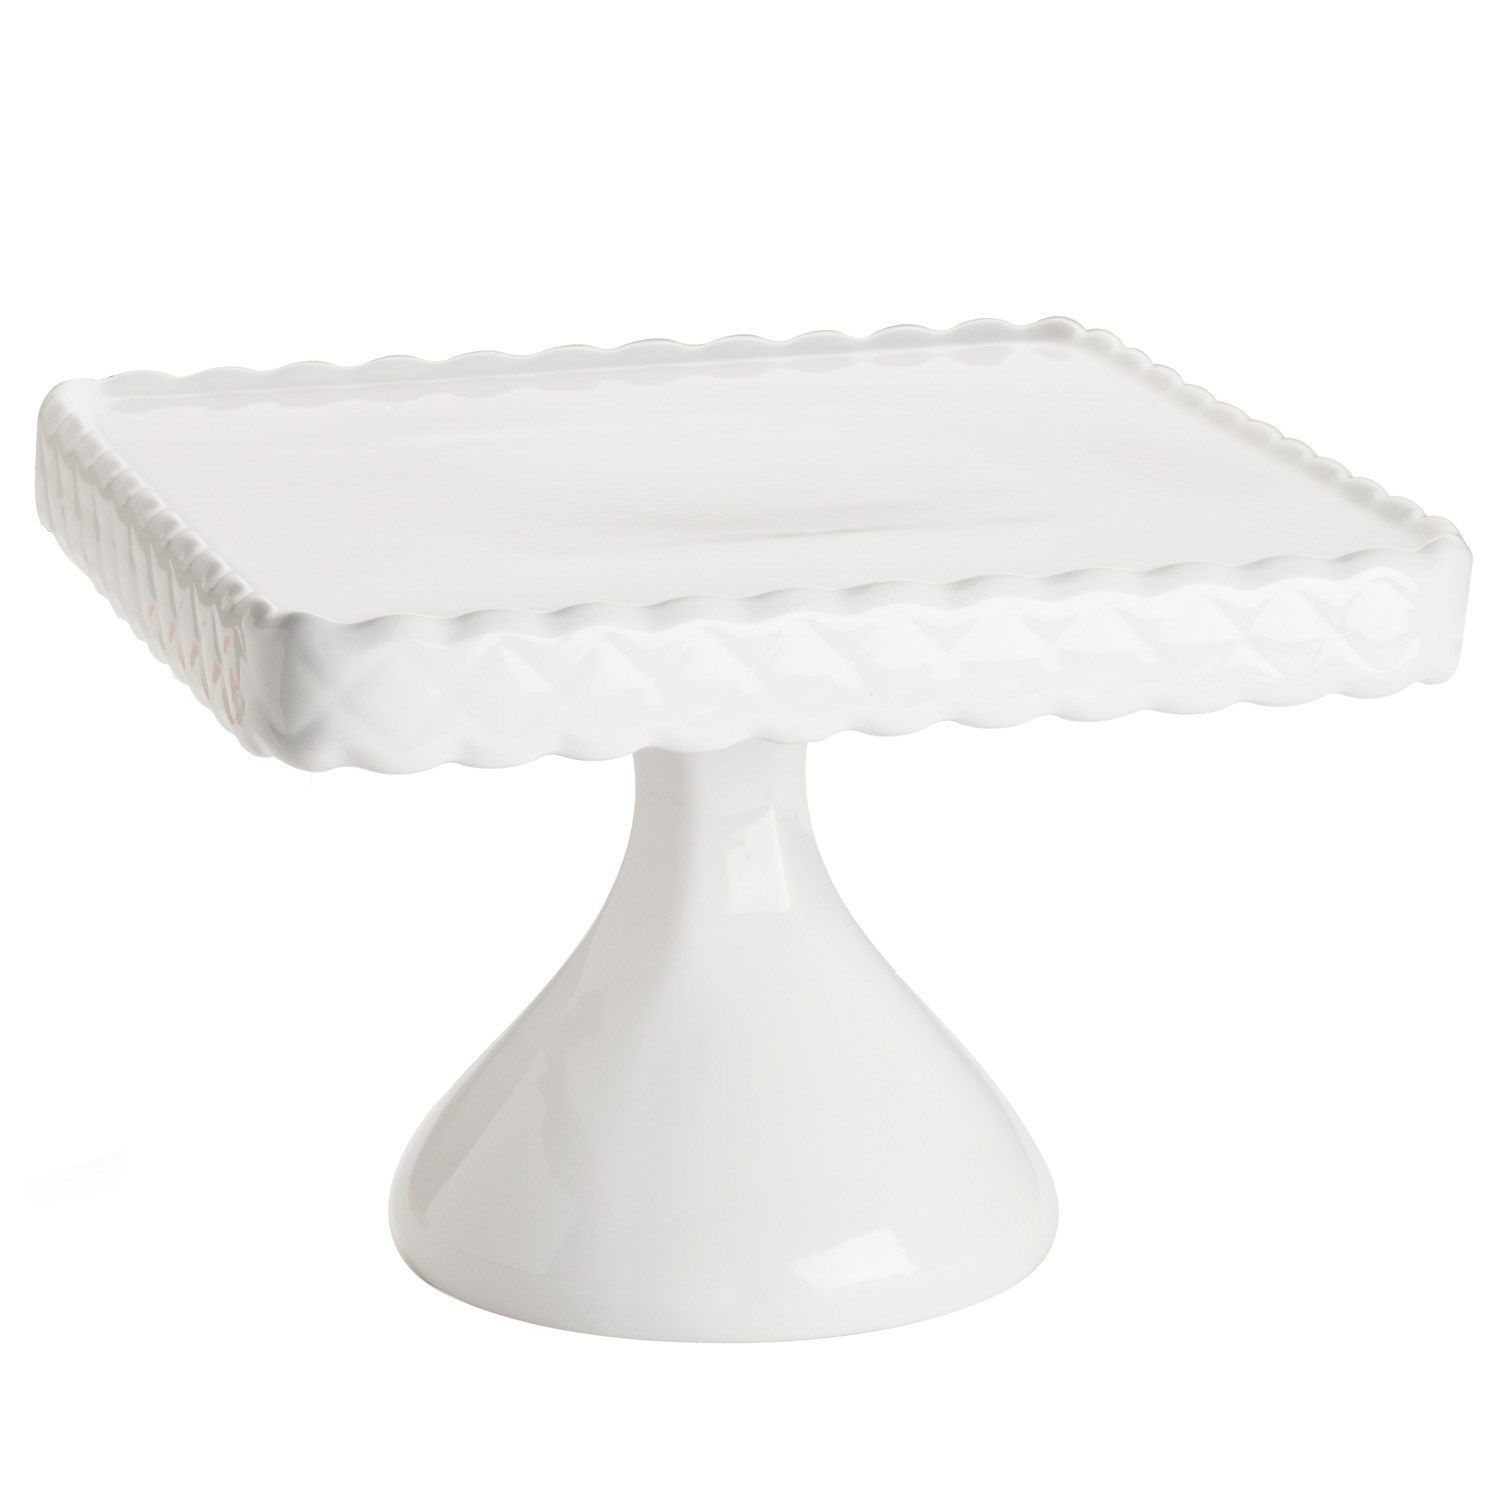 Rosanna Decor Bon White Footed Square Cake Stand Laylagrayce Entertaining Gifts 75 00 Holiday Pinterest